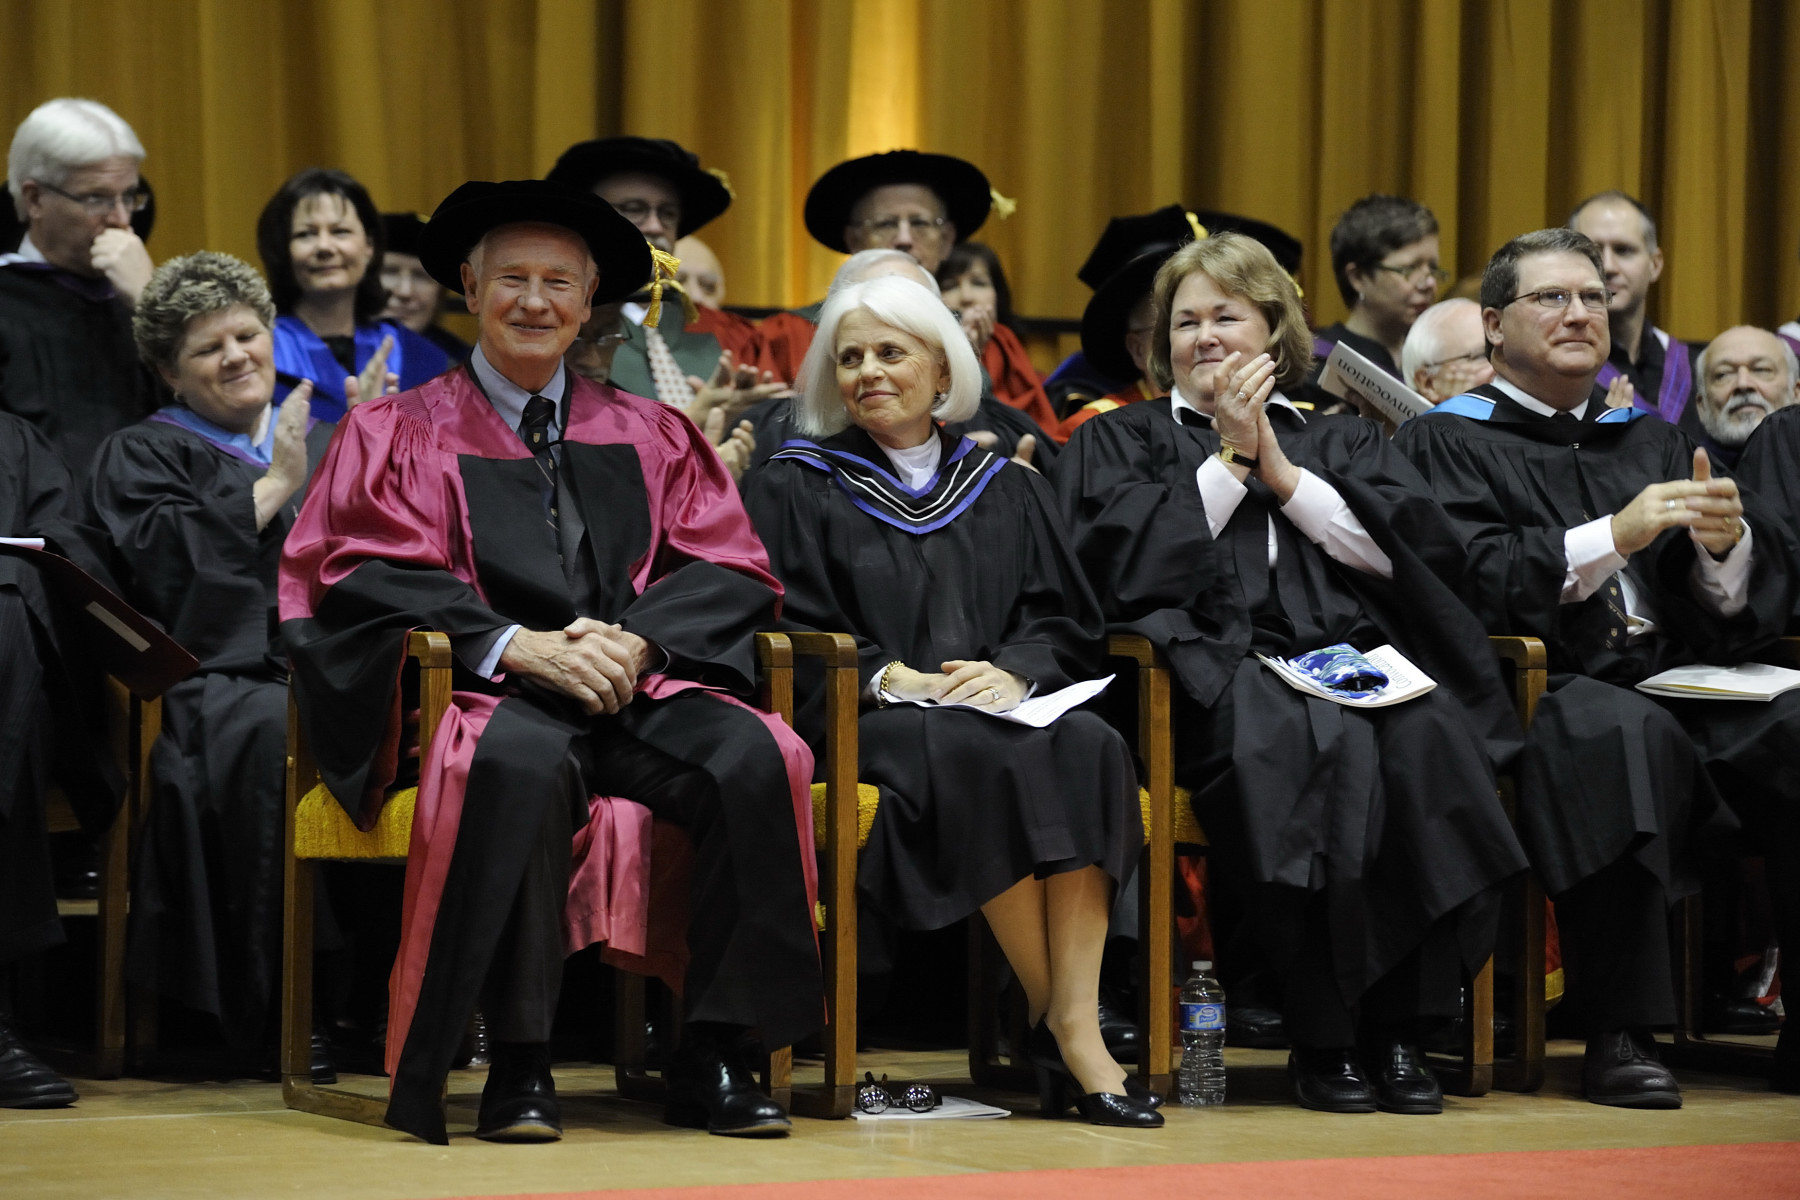 Prior to becoming the 28th governor general of Canada on October 1, 2010, His Excellency had been the president and vice-chancellor of the University of Waterloo since June 1999.